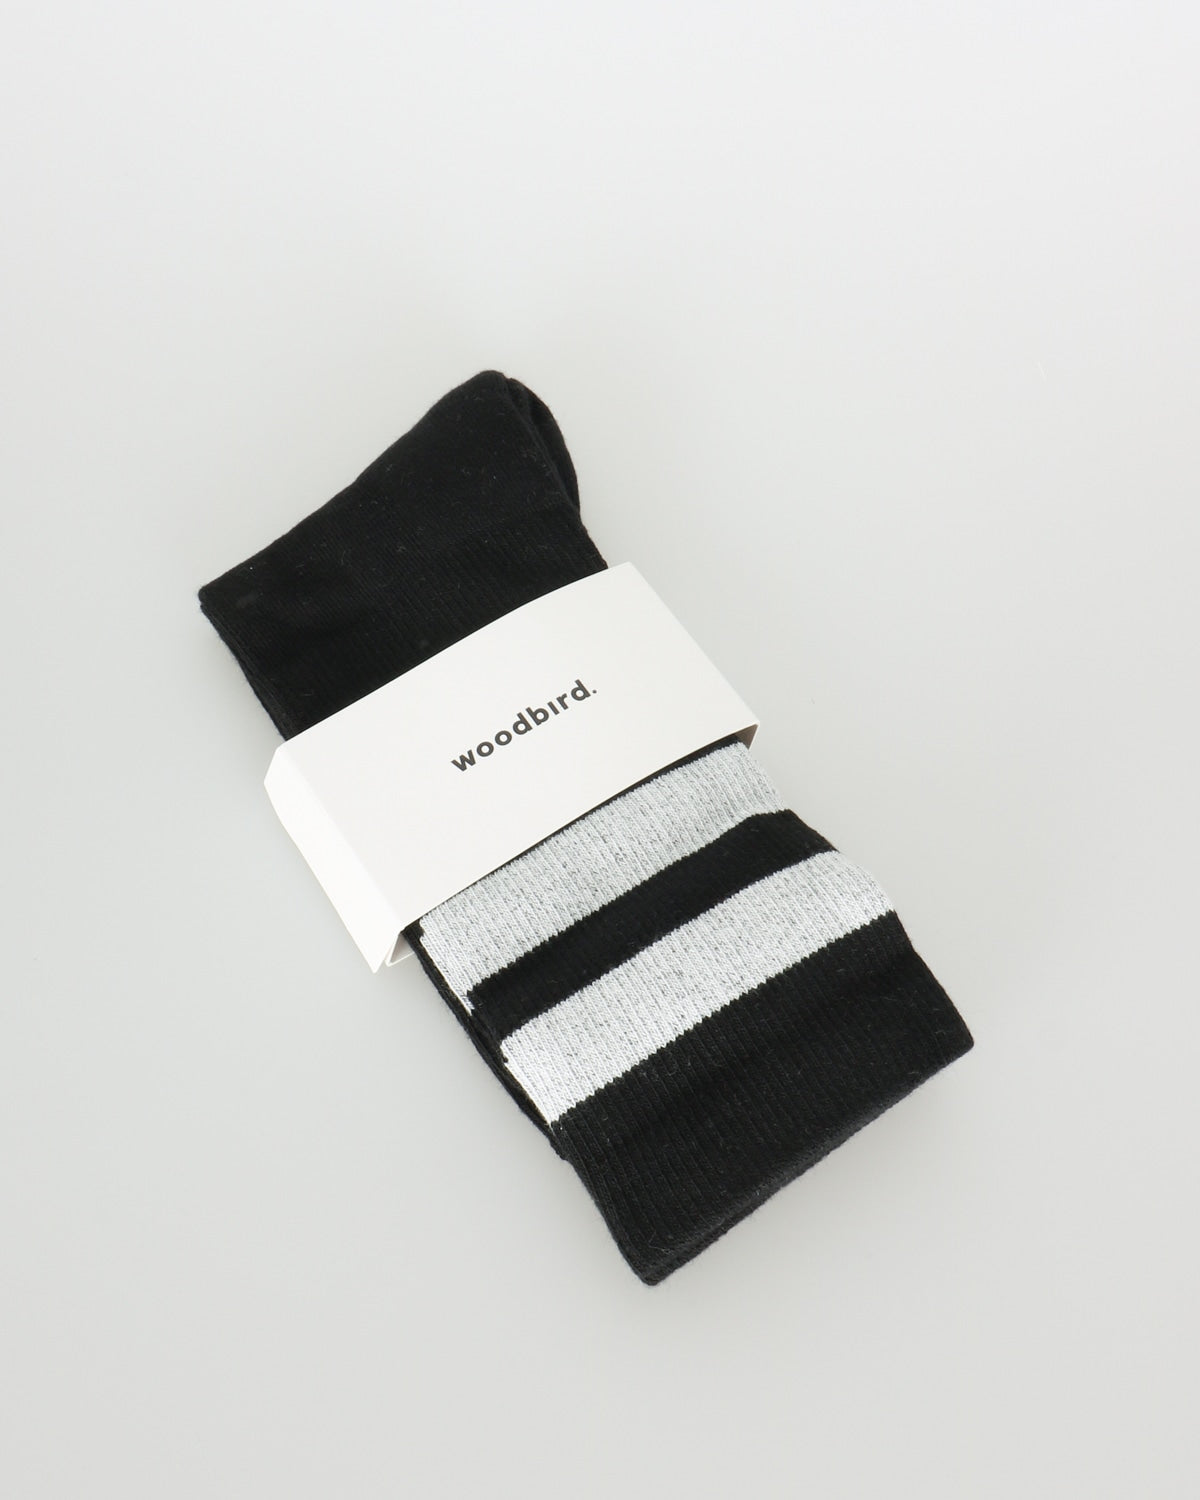 woodbird_tennis socks_black white_1_2